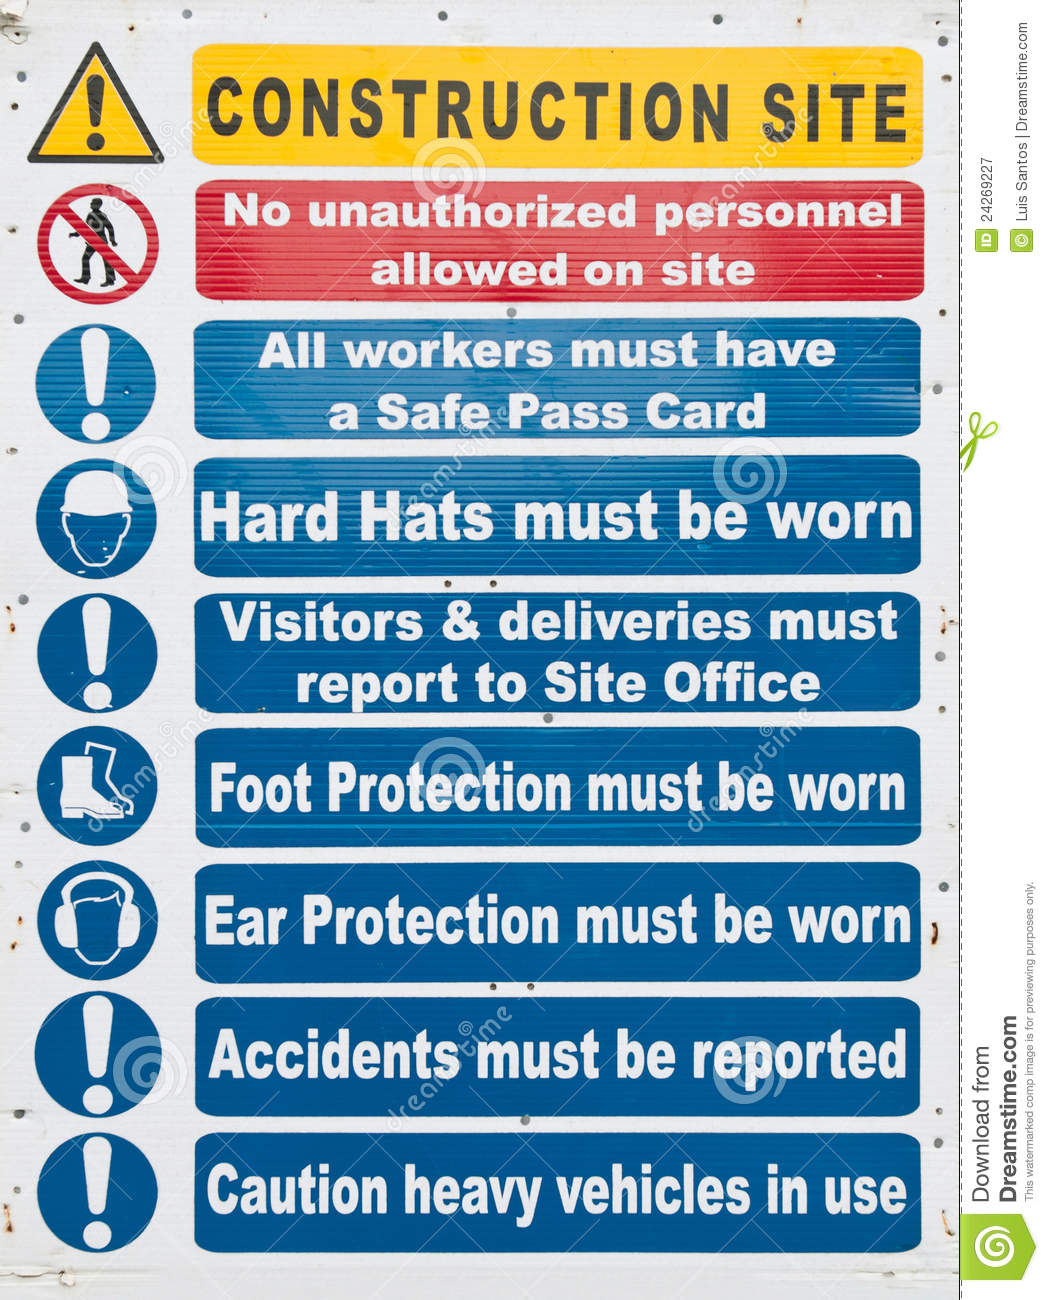 Construction site sign stock image  Image of hazard